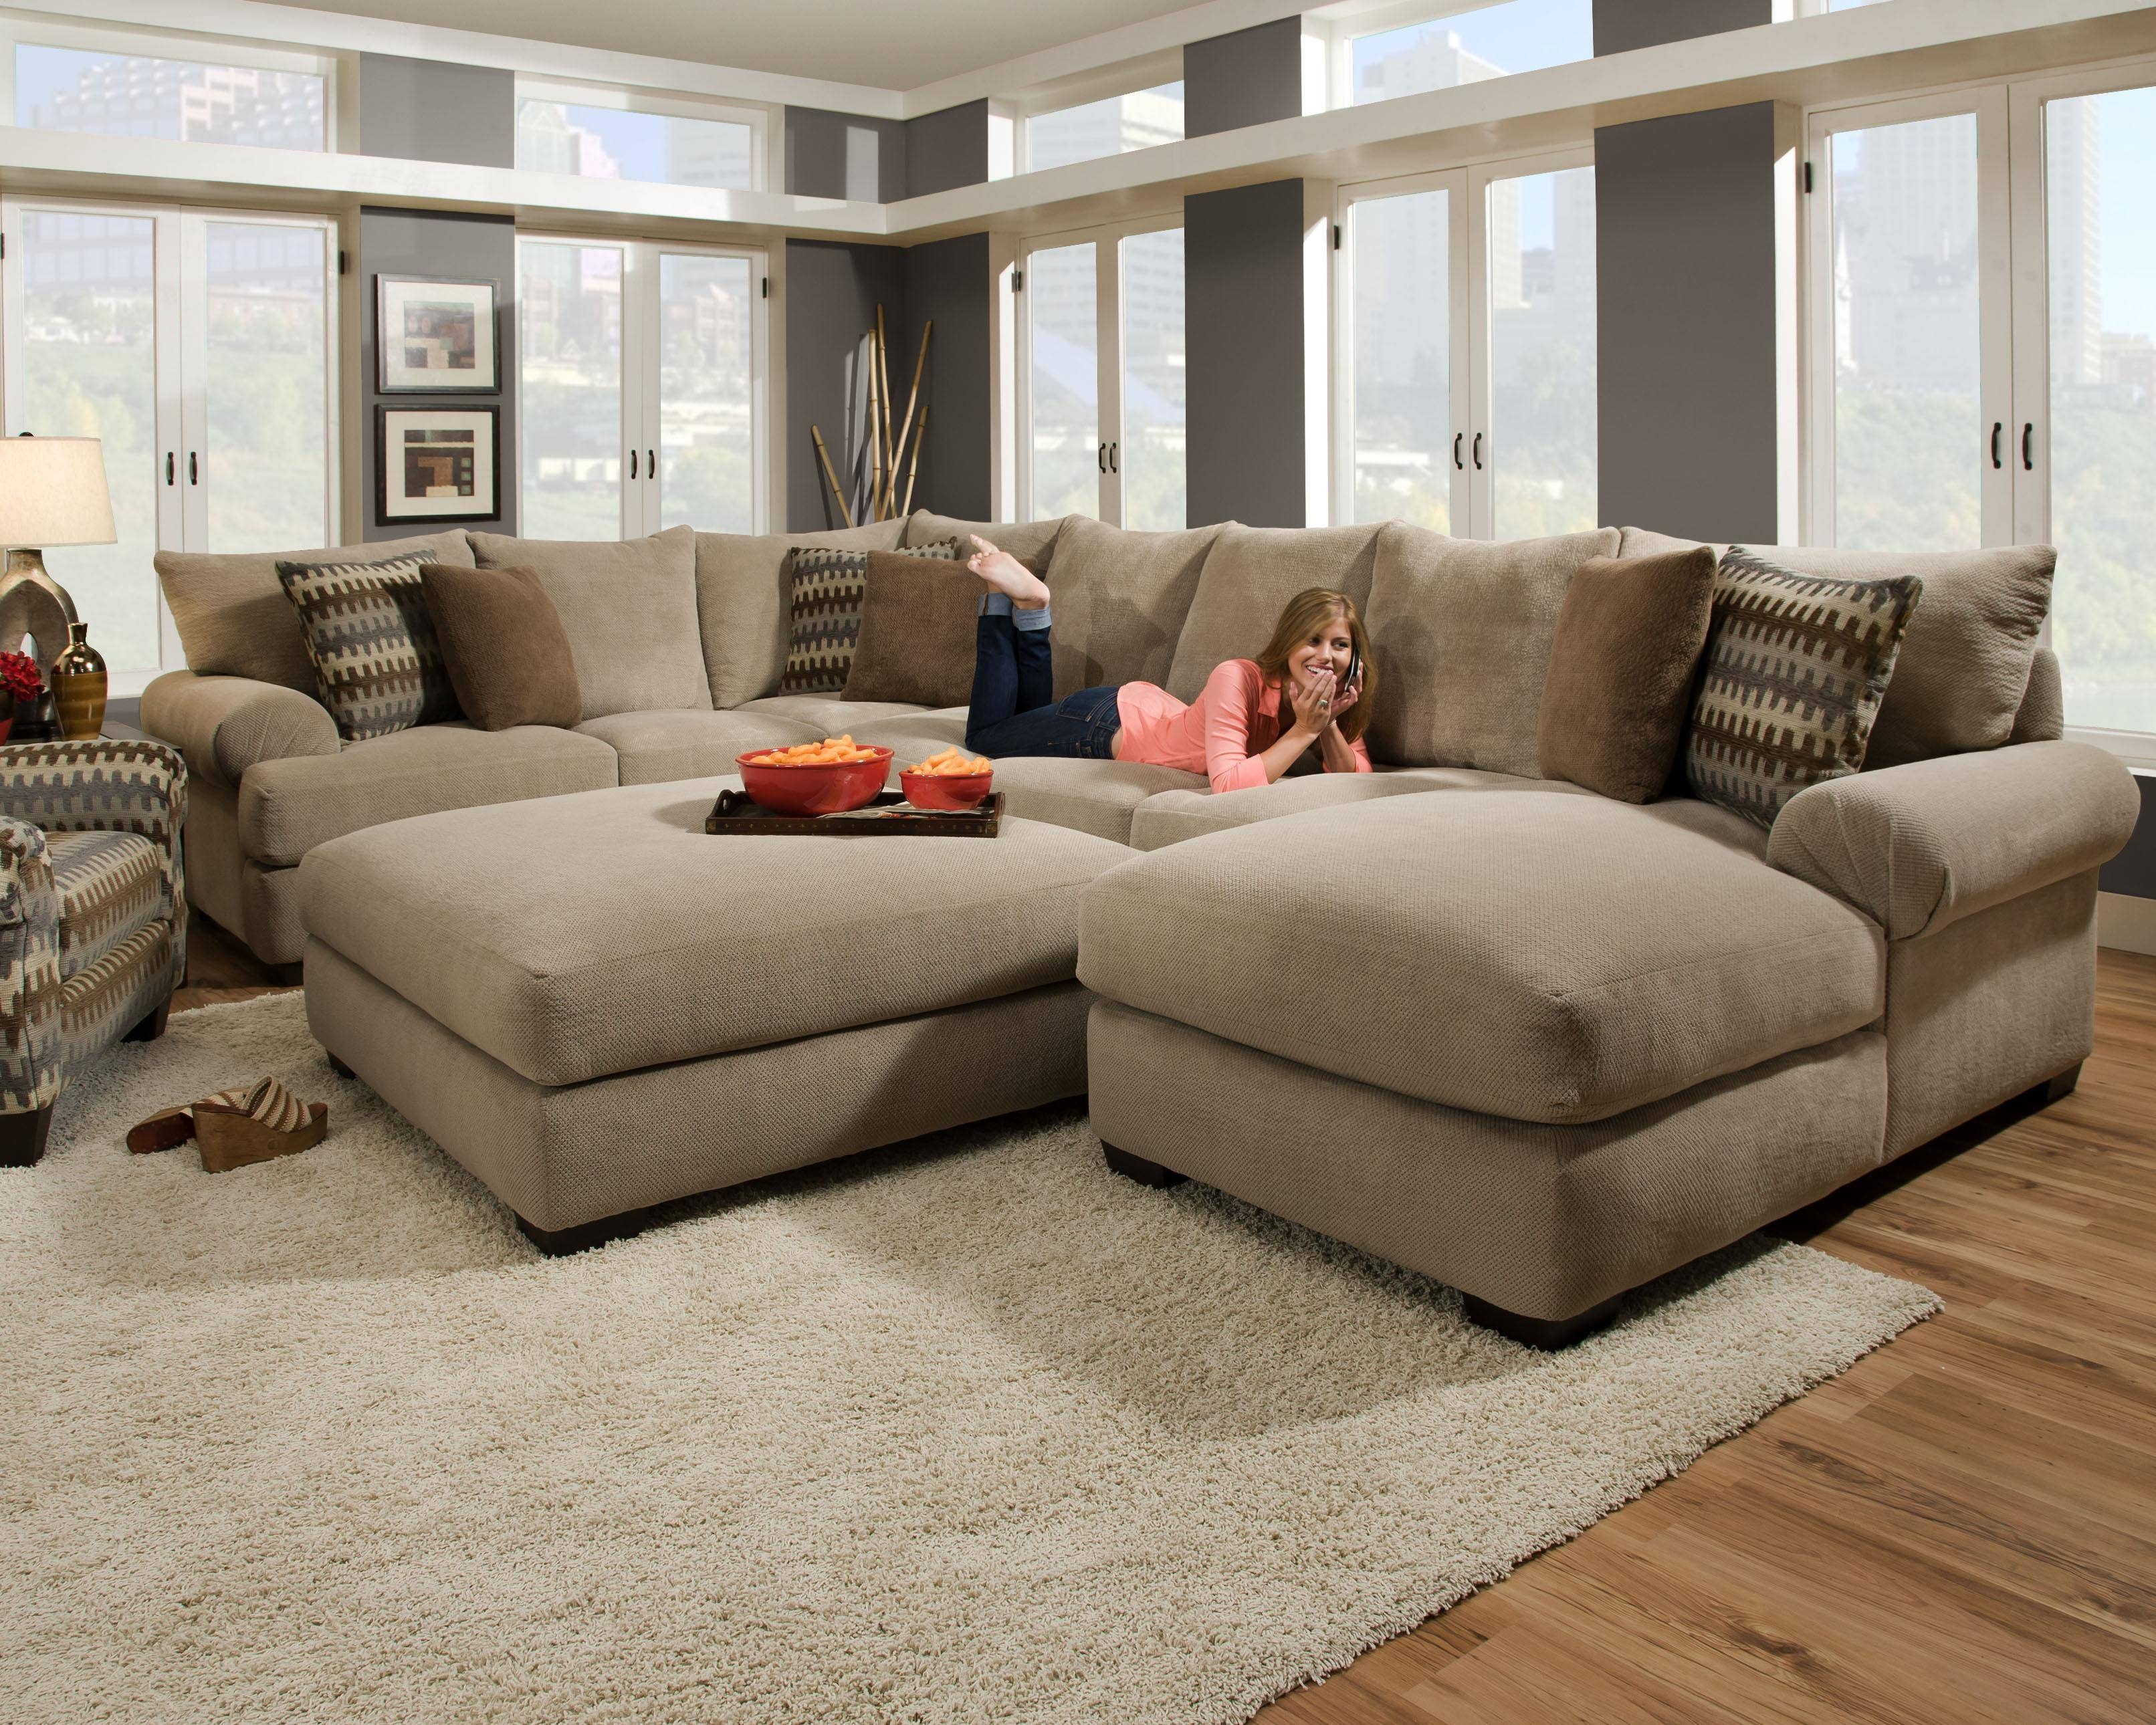 Cheap Comfortable Sectional Sofas | Tehranmix Decoration throughout Large Comfortable Sectional Sofas (Image 4 of 25)